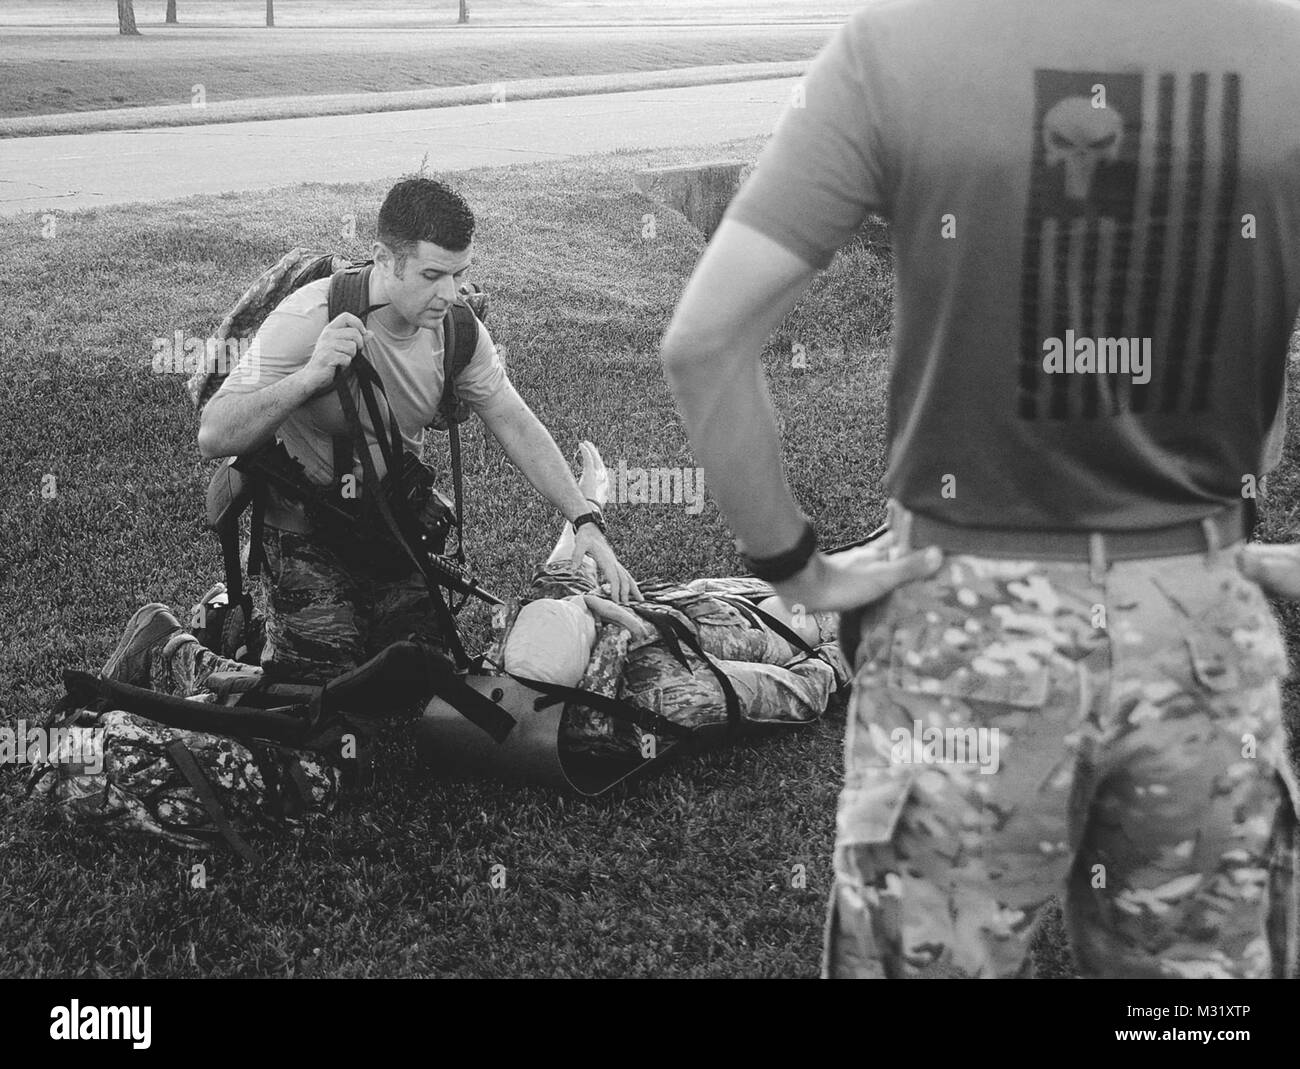 Air Force Staff Sgt. Alejandro Gomez works to securely attach a 175 pound mannequin to a Skedco litter in order - Stock Image